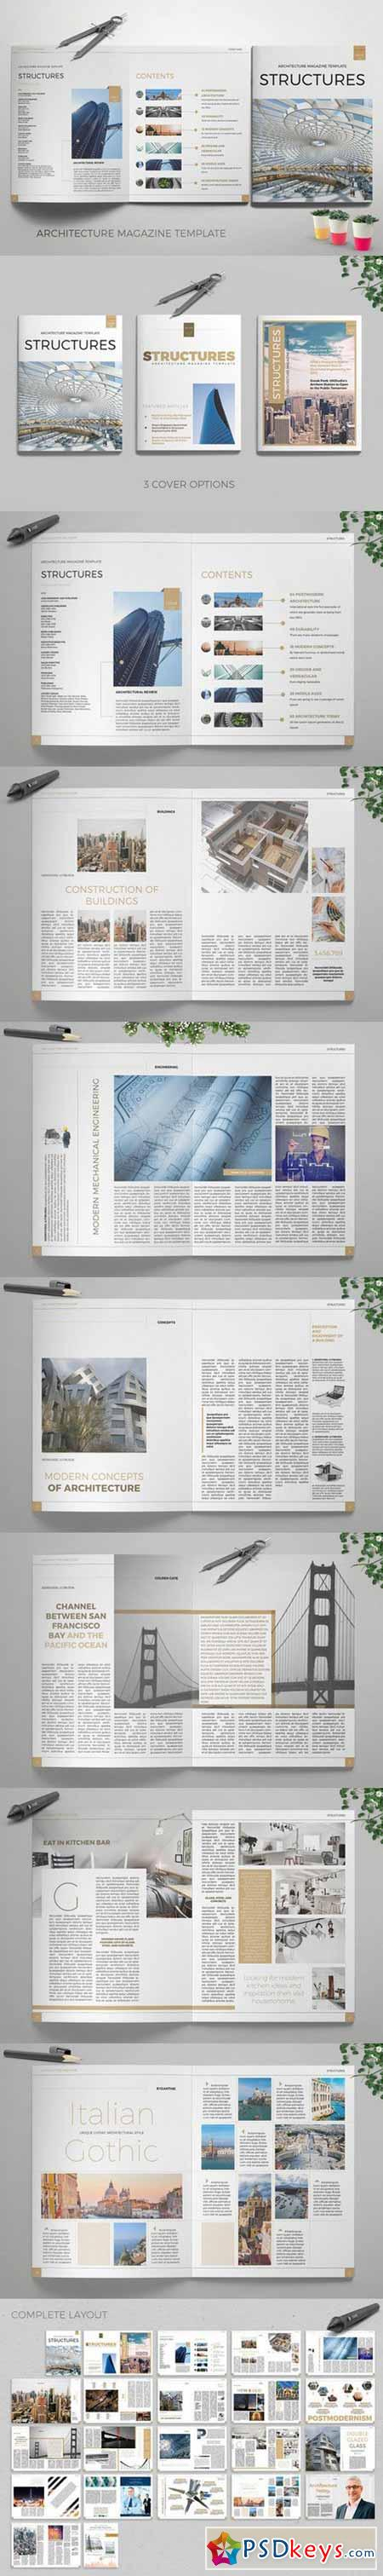 Structures Magazine InDesign template 592678